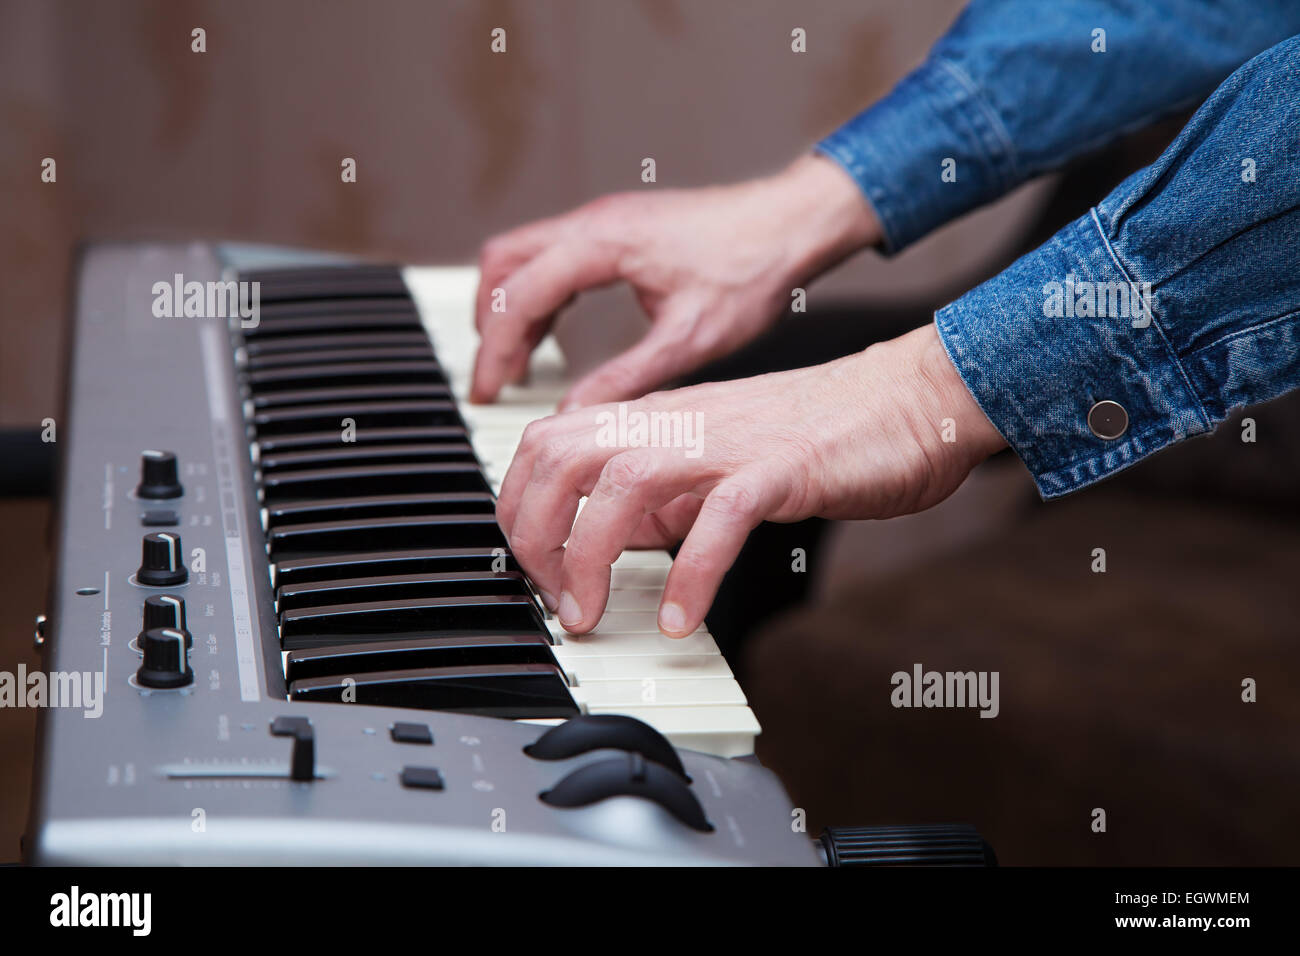 hands of the musician on the keyboard synthesizer - Stock Image